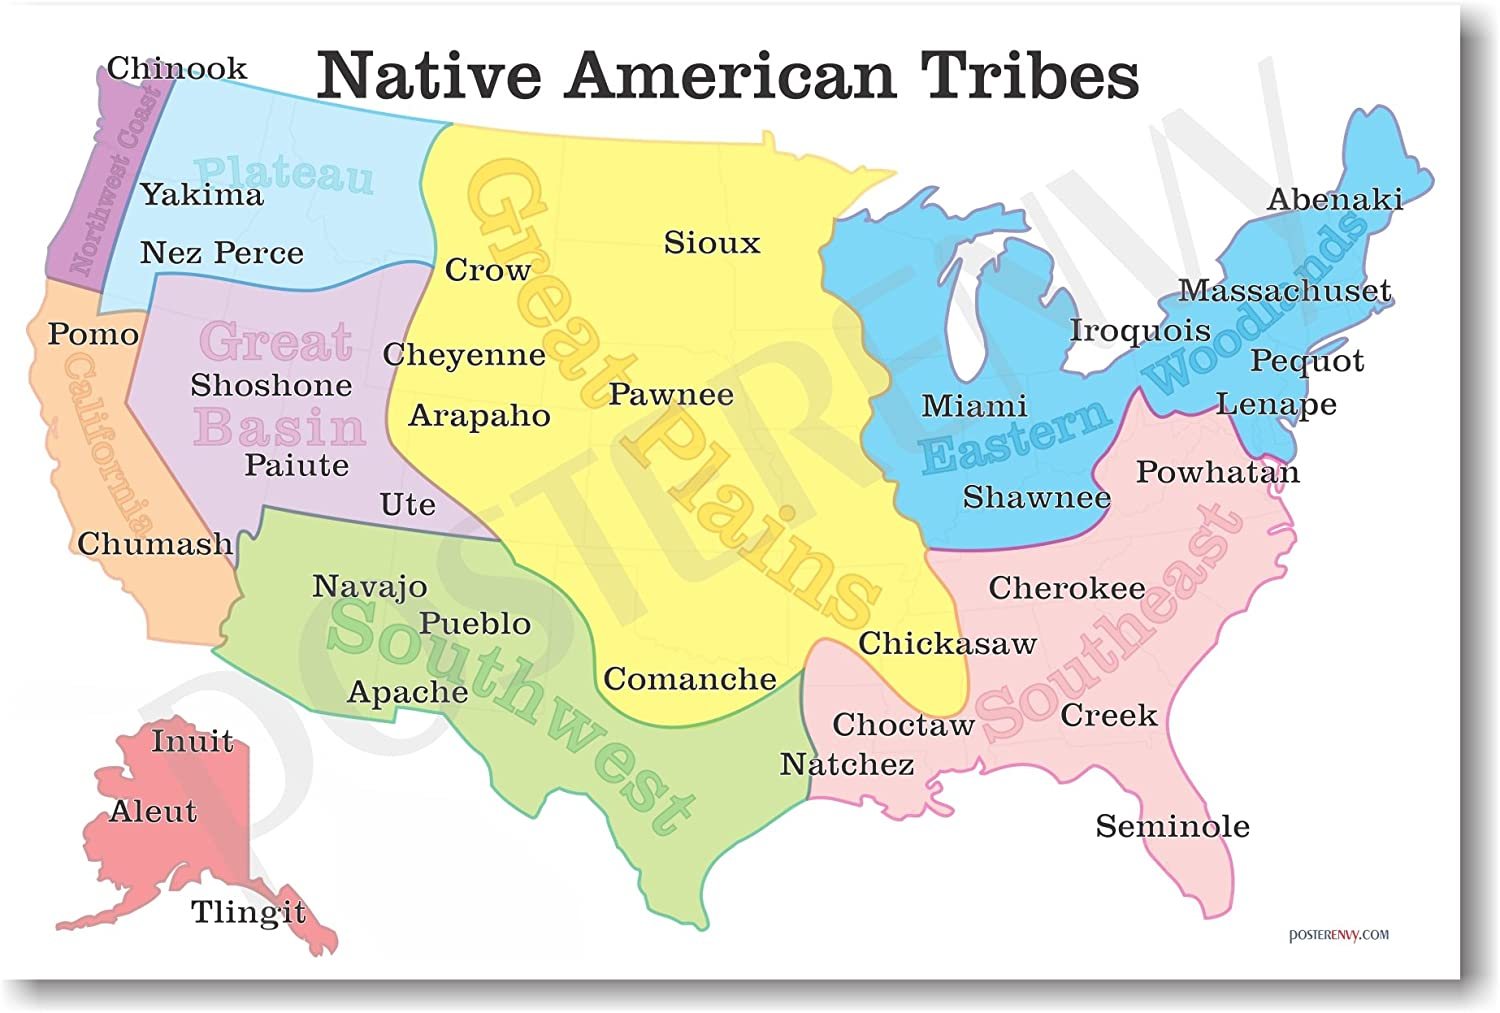 Native American Map Of Us Amazon.com: Native American Tribes Map   US History Classroom